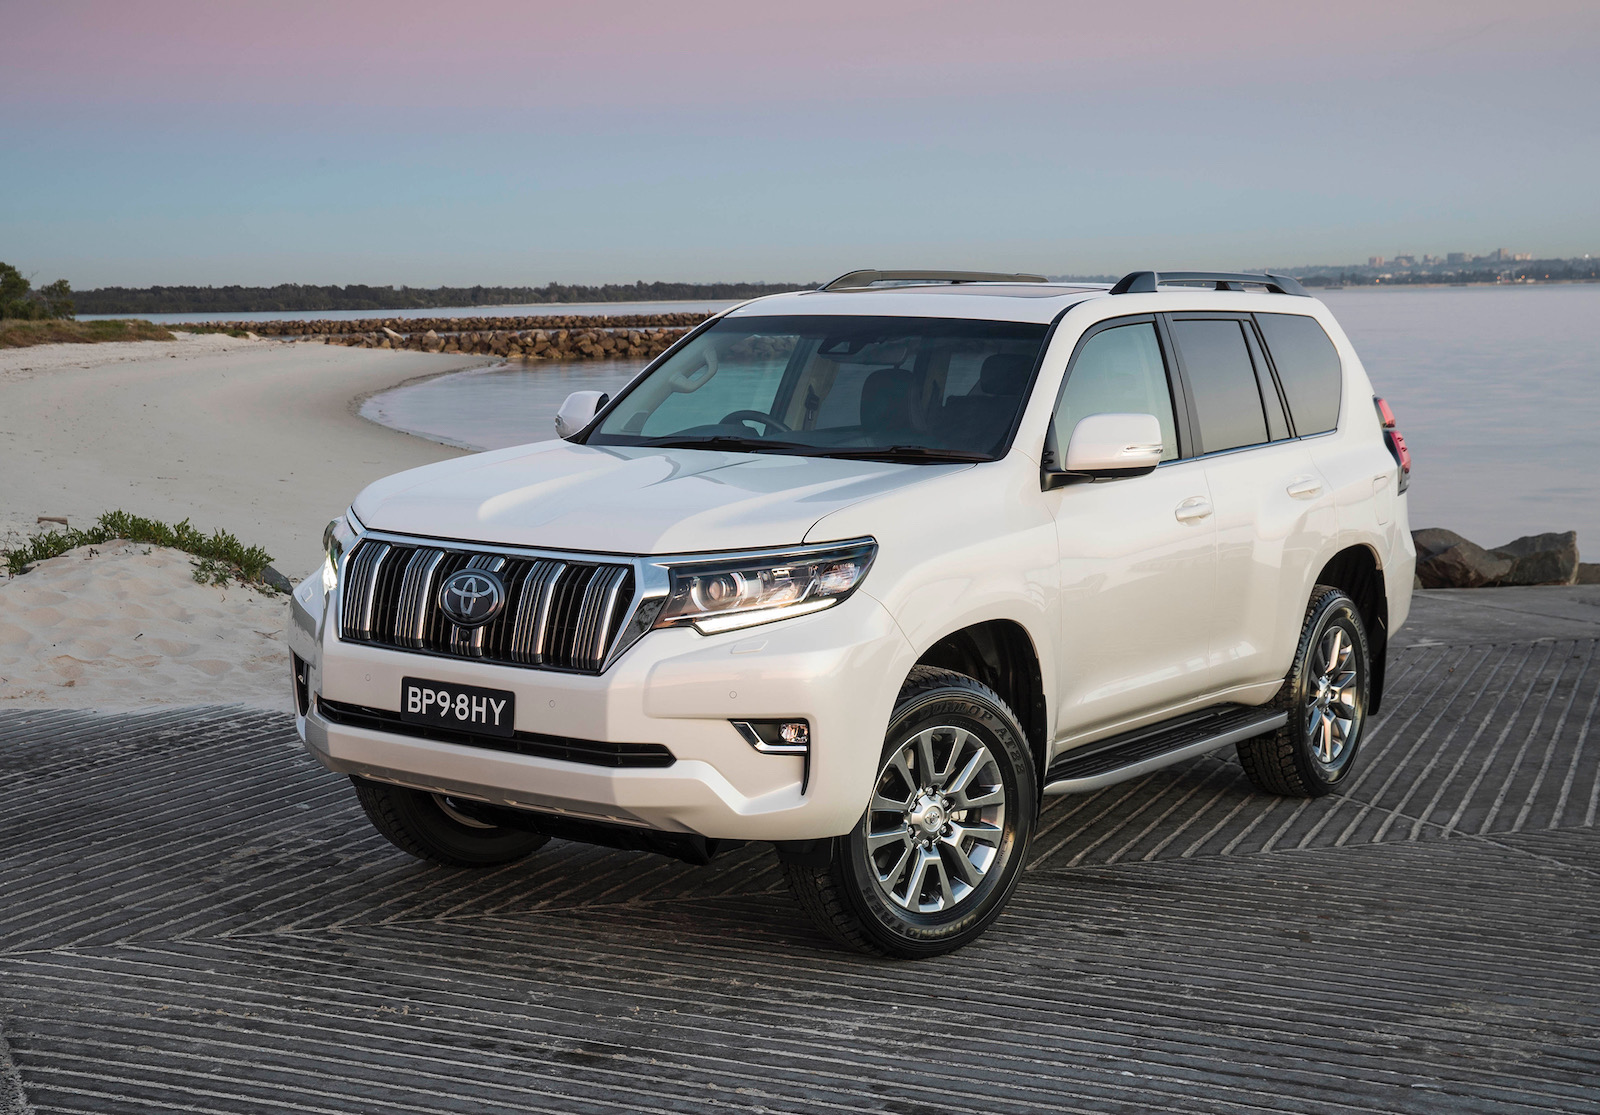 Toyota Prado Now Available With Relocated Spare Wheel